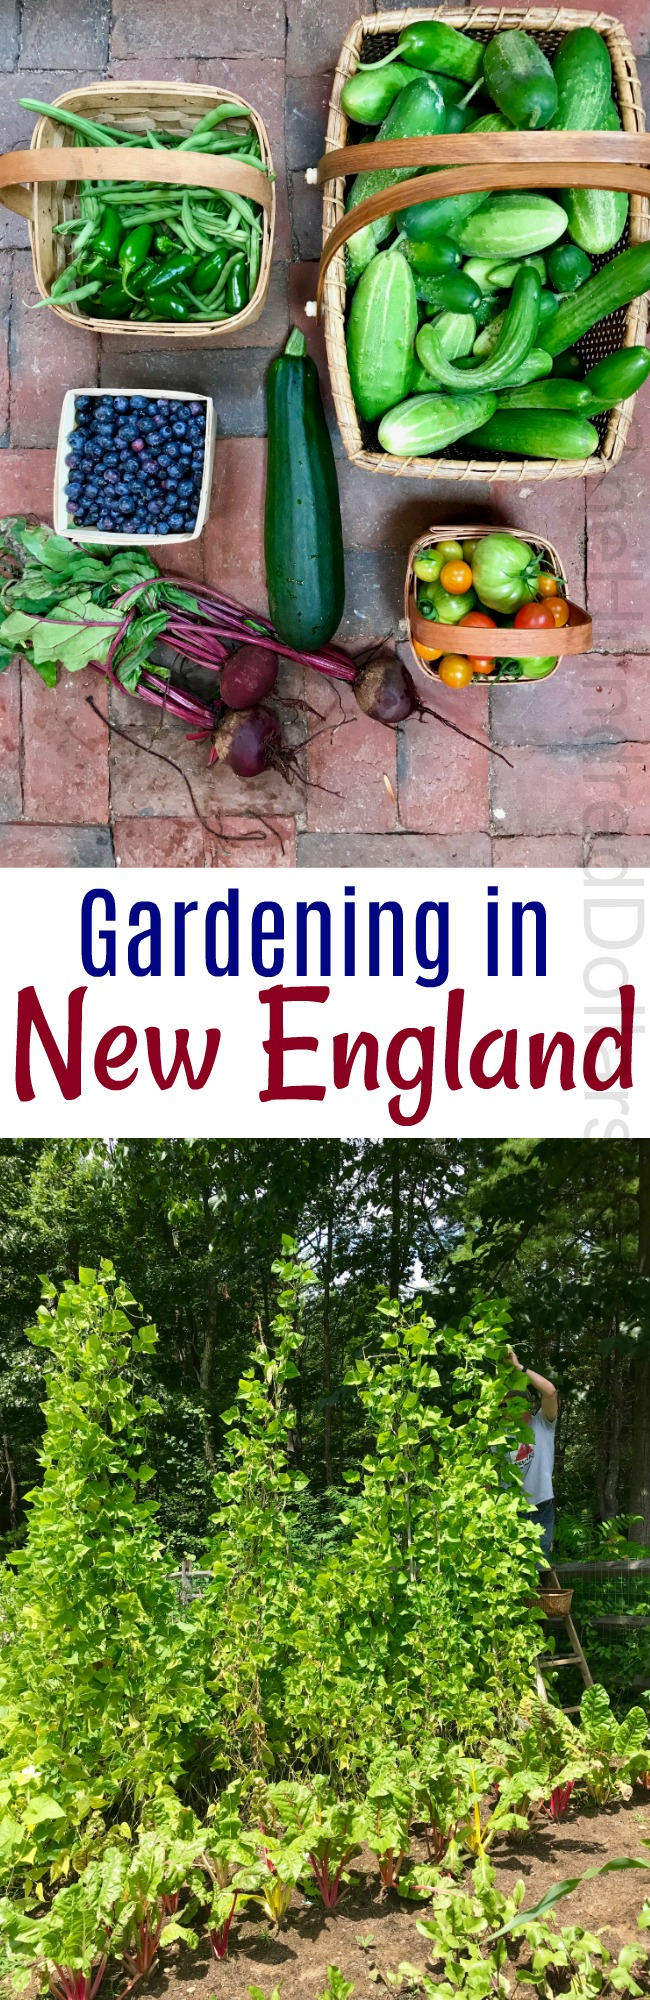 Gardening in New England – My First Big Harvest and the Backyard Vegetable Garden Tally for 8/1/2018